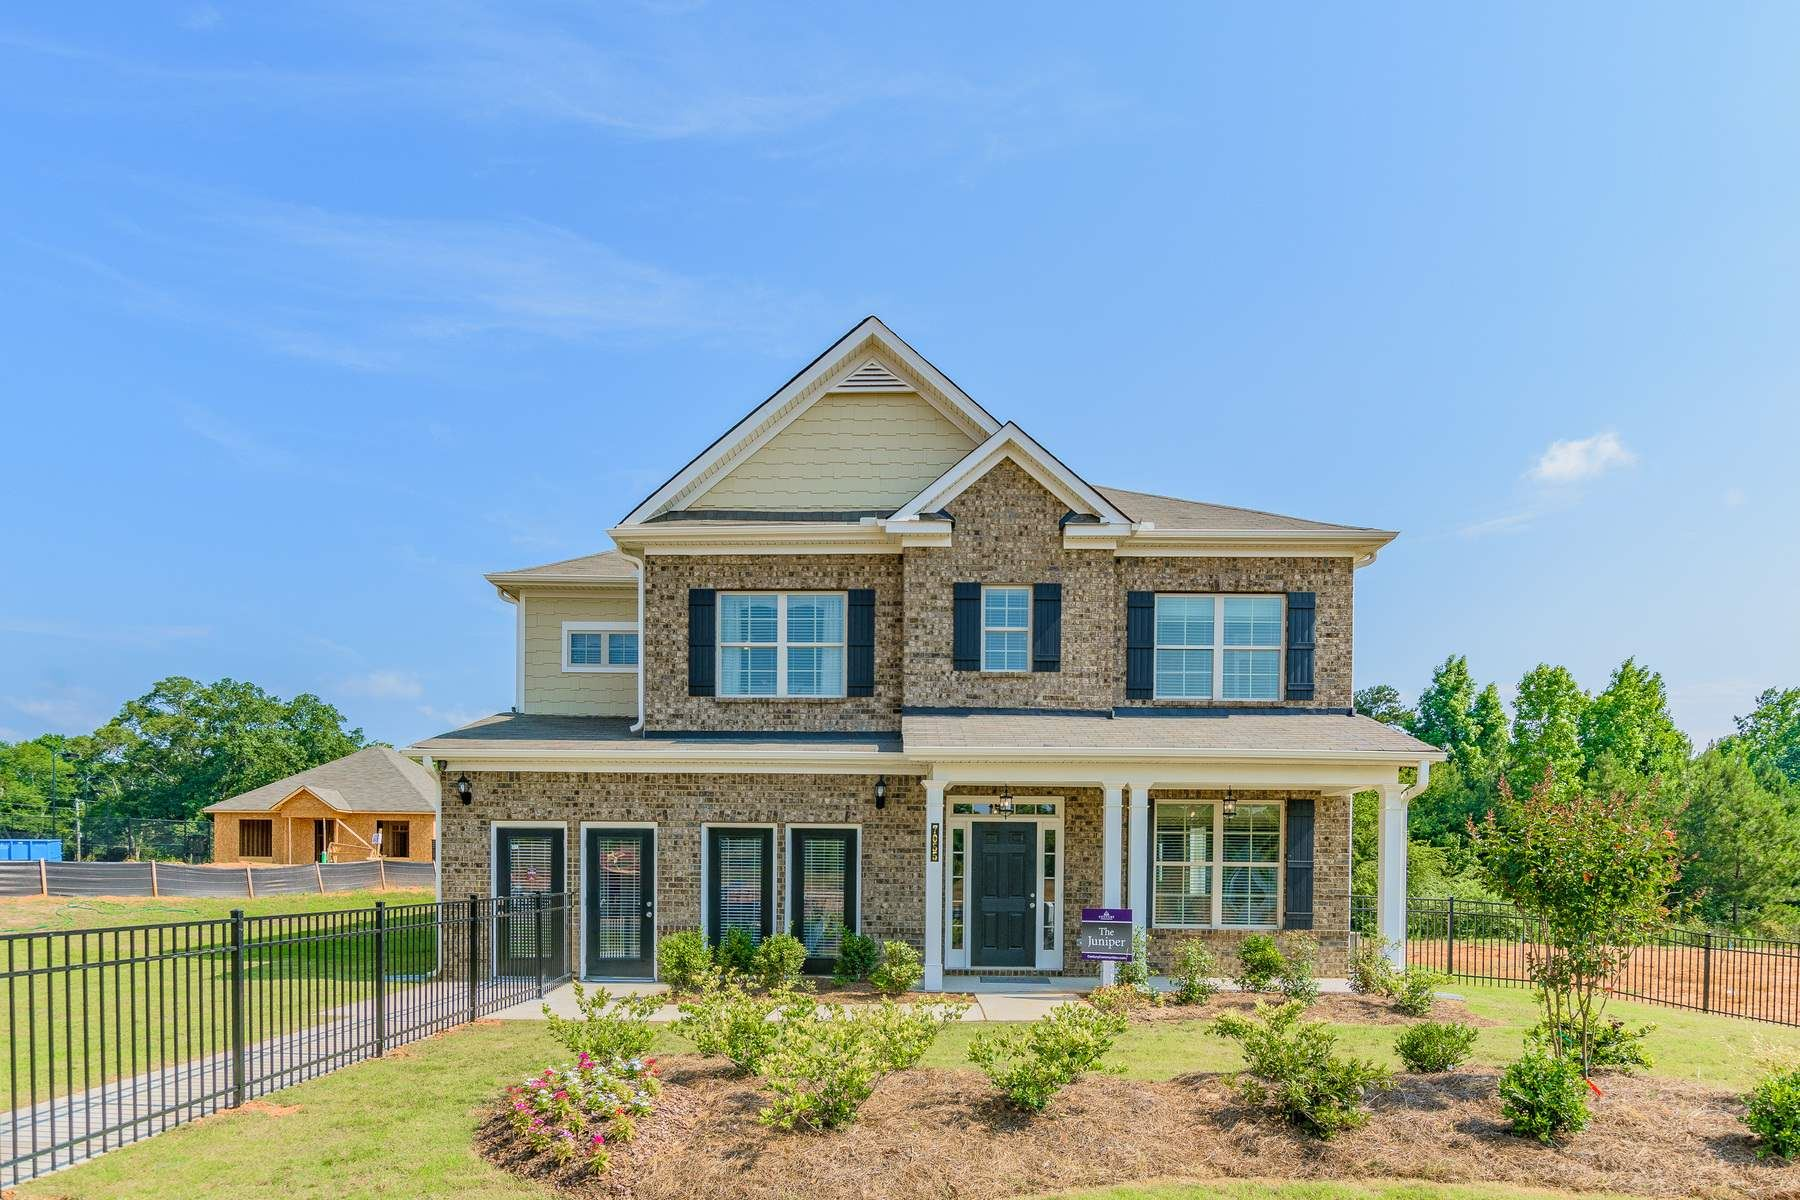 303 Buckpasser Ct, Acworth, GA 30102 - #: 8731491